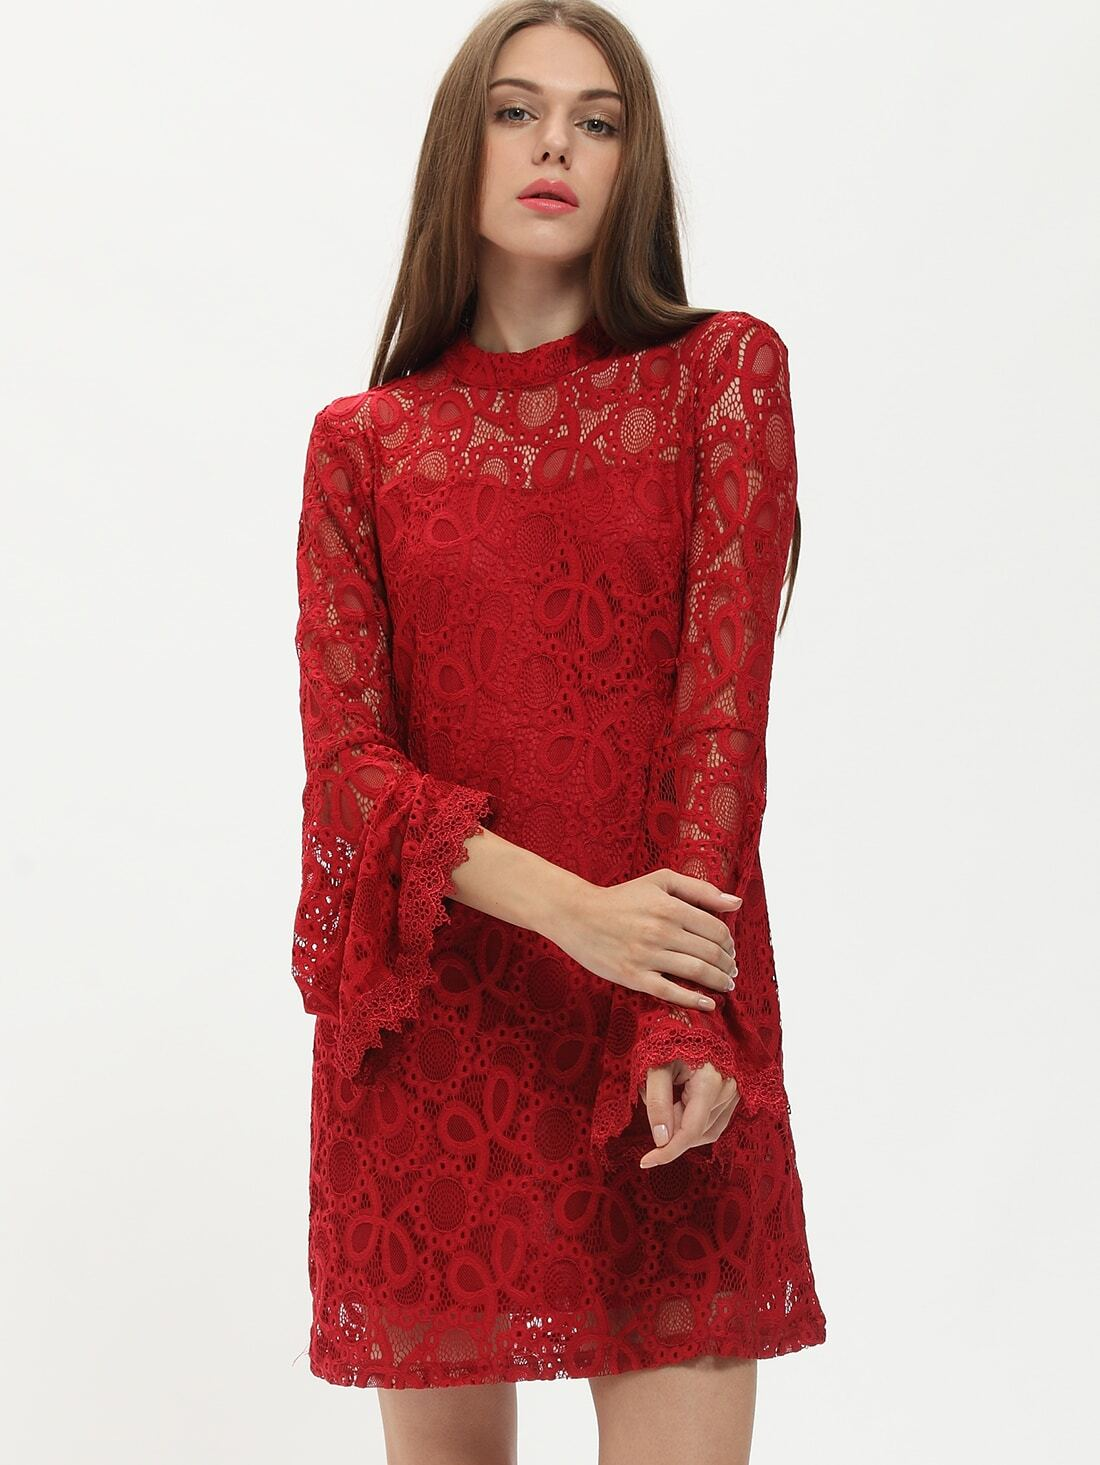 Burgundy Long Sleeve Lace Dress Shein Sheinside